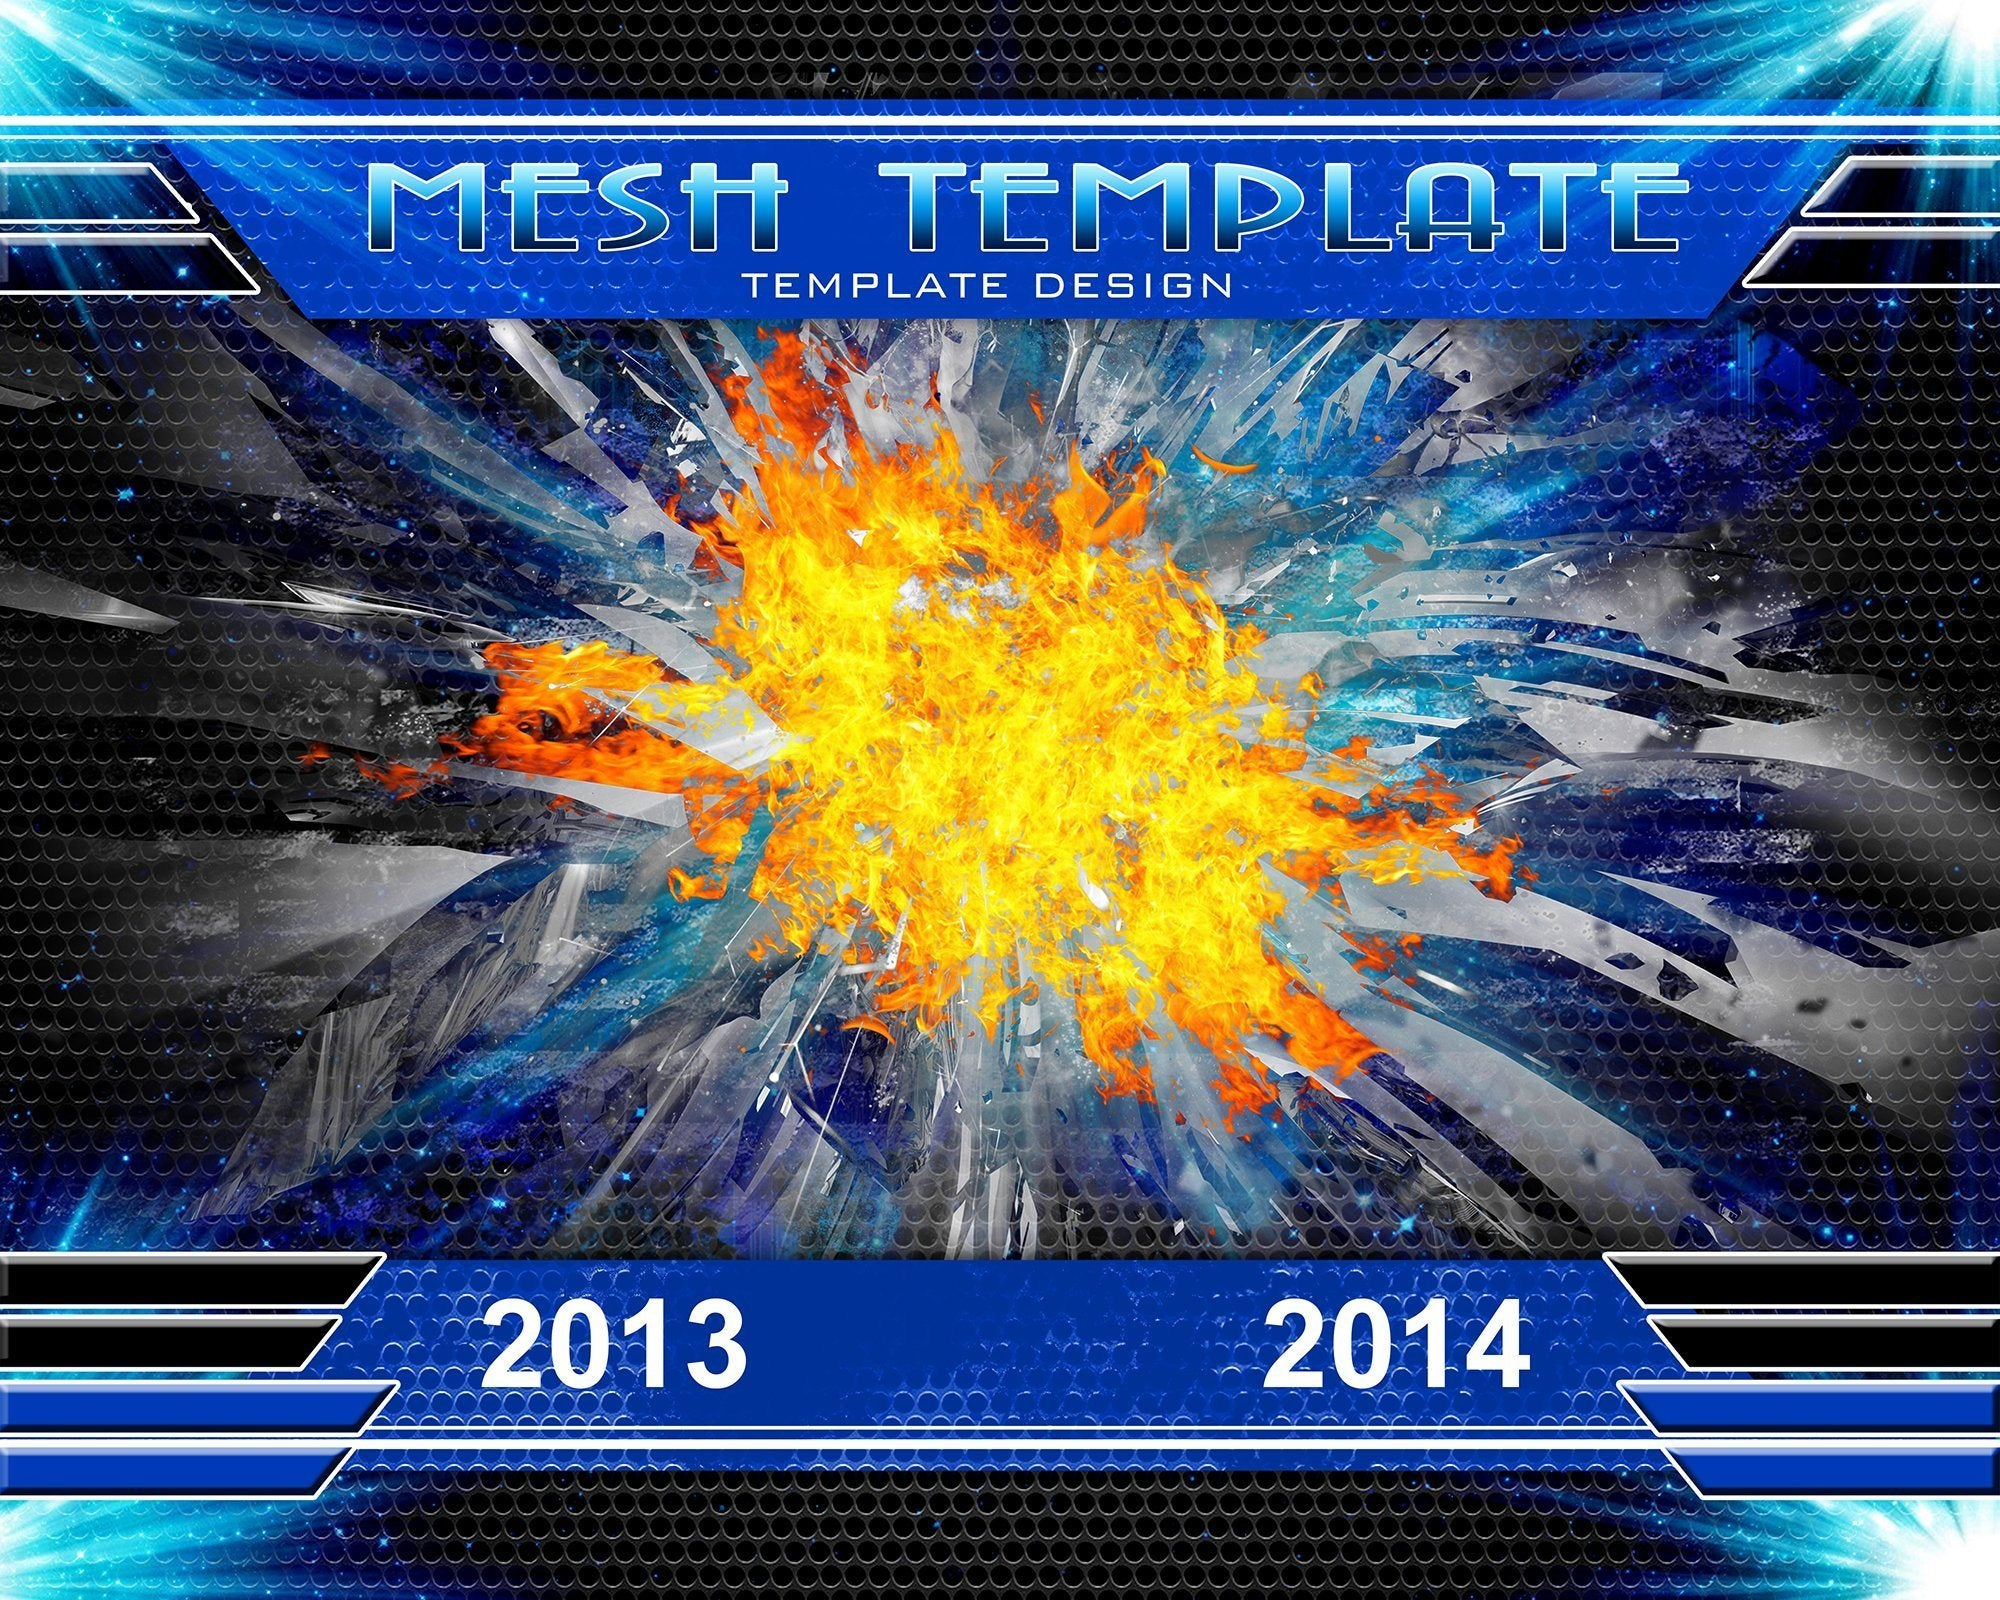 Mesh v.3 - Xtreme Team Downloadable Template Photo Solutions PSMGraphix